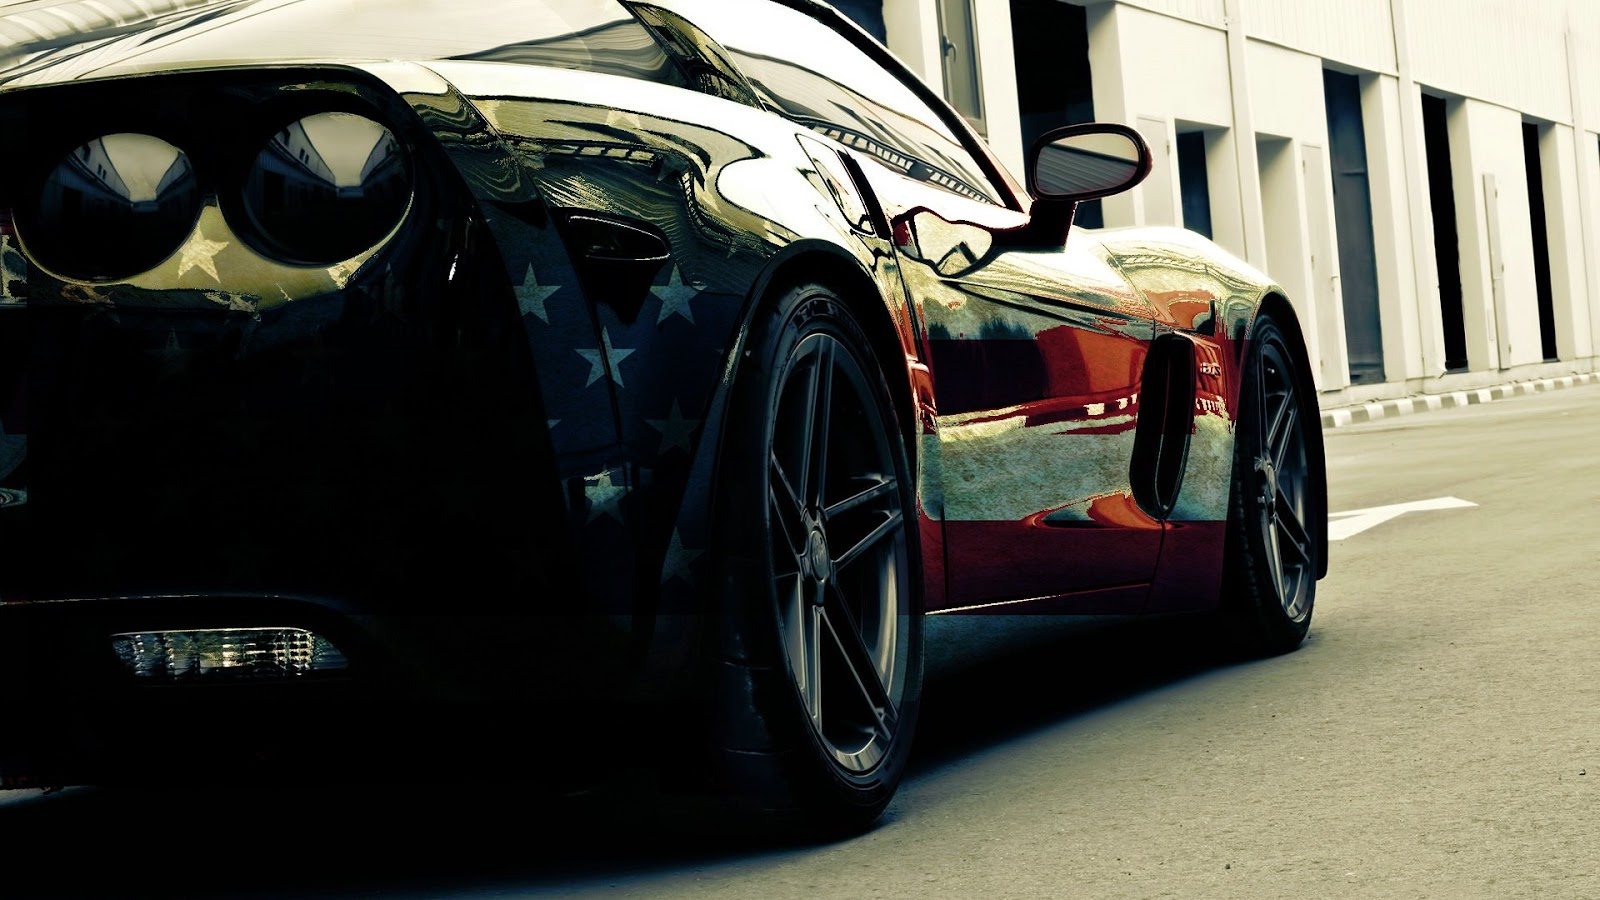 American Flag Corvette Car